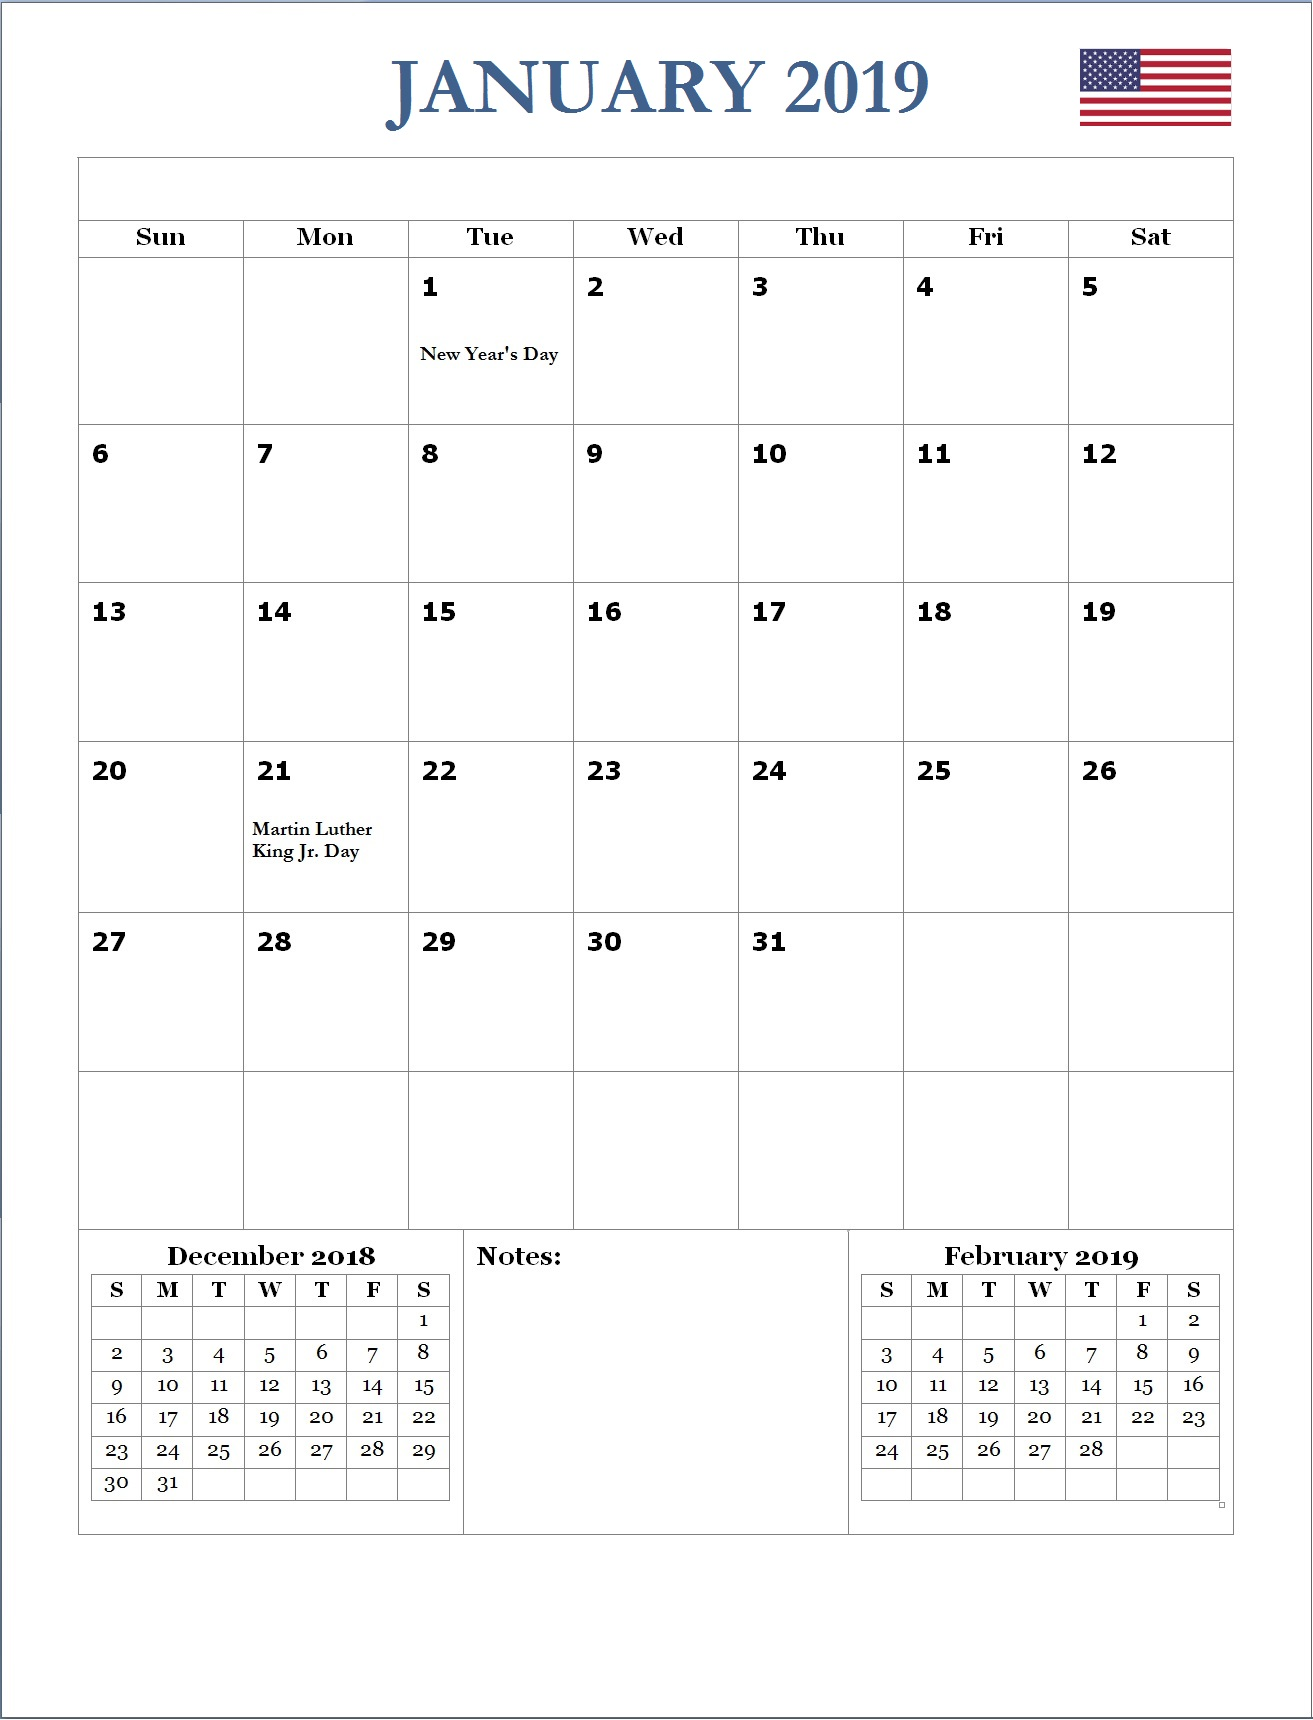 2019 January USA Holidays Calendar